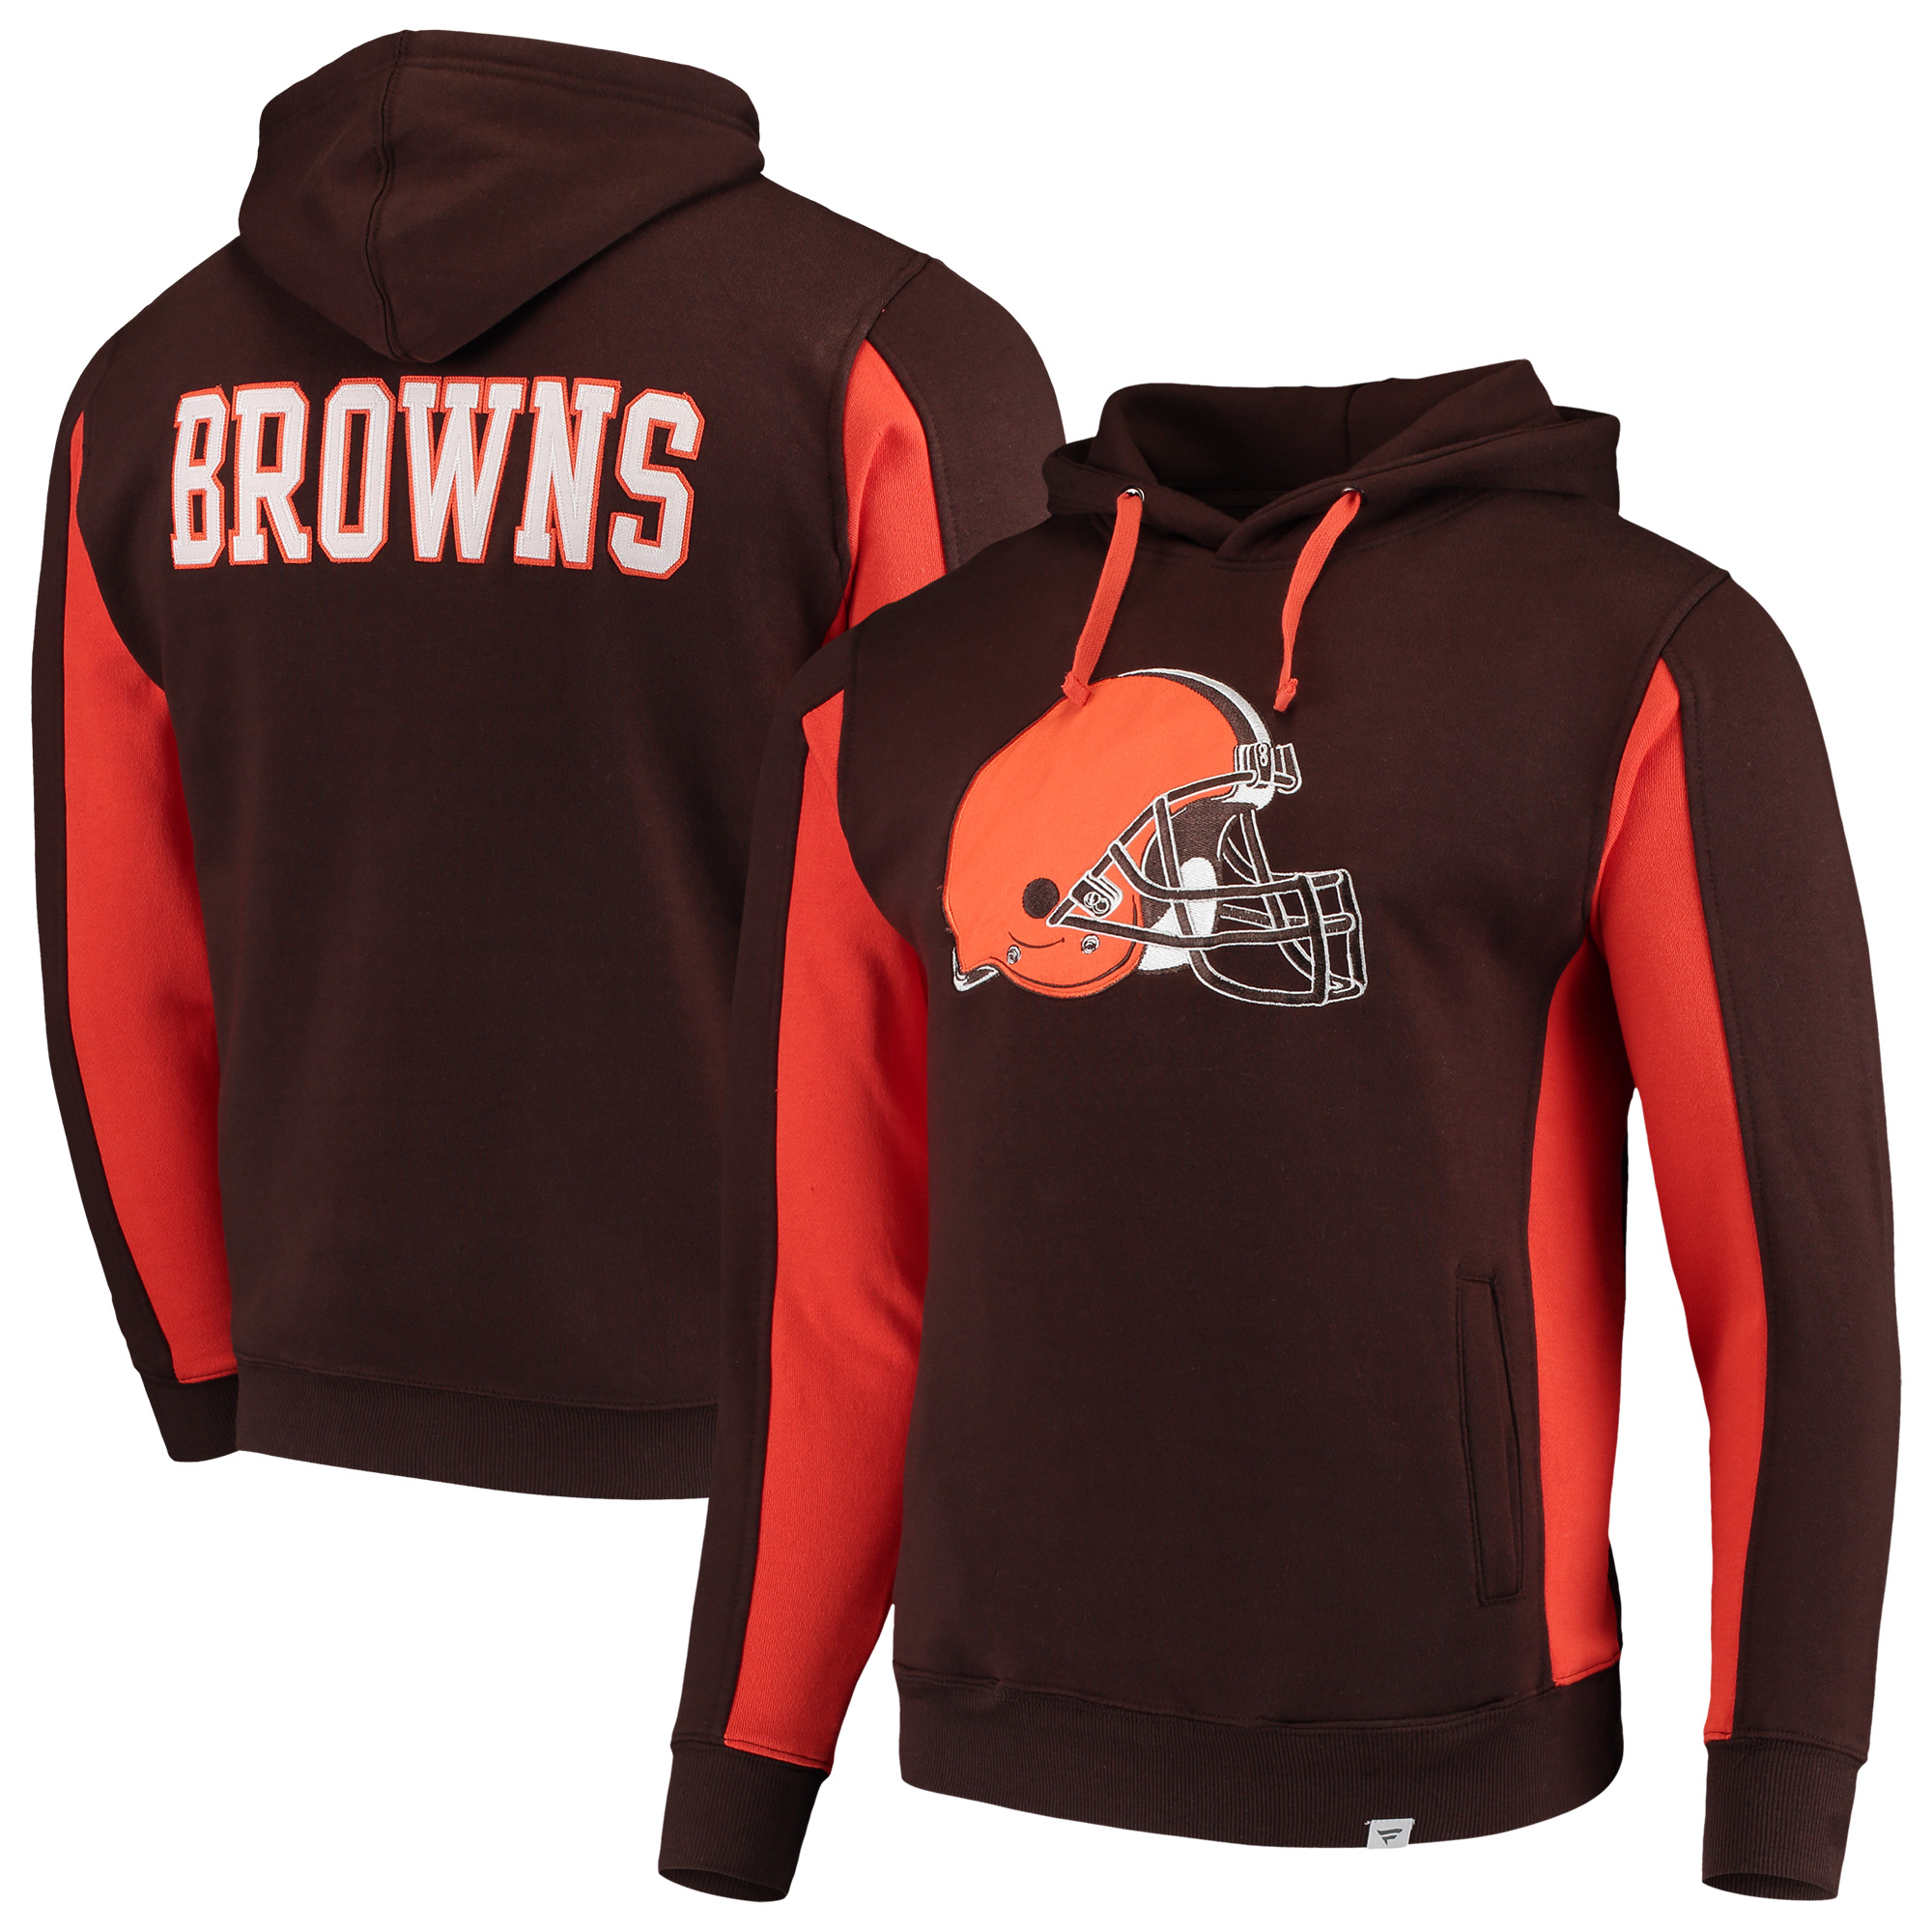 Cleveland Browns NFL Pro Line by Fanatics Branded Team Iconic Pullover Hoodie - Brown